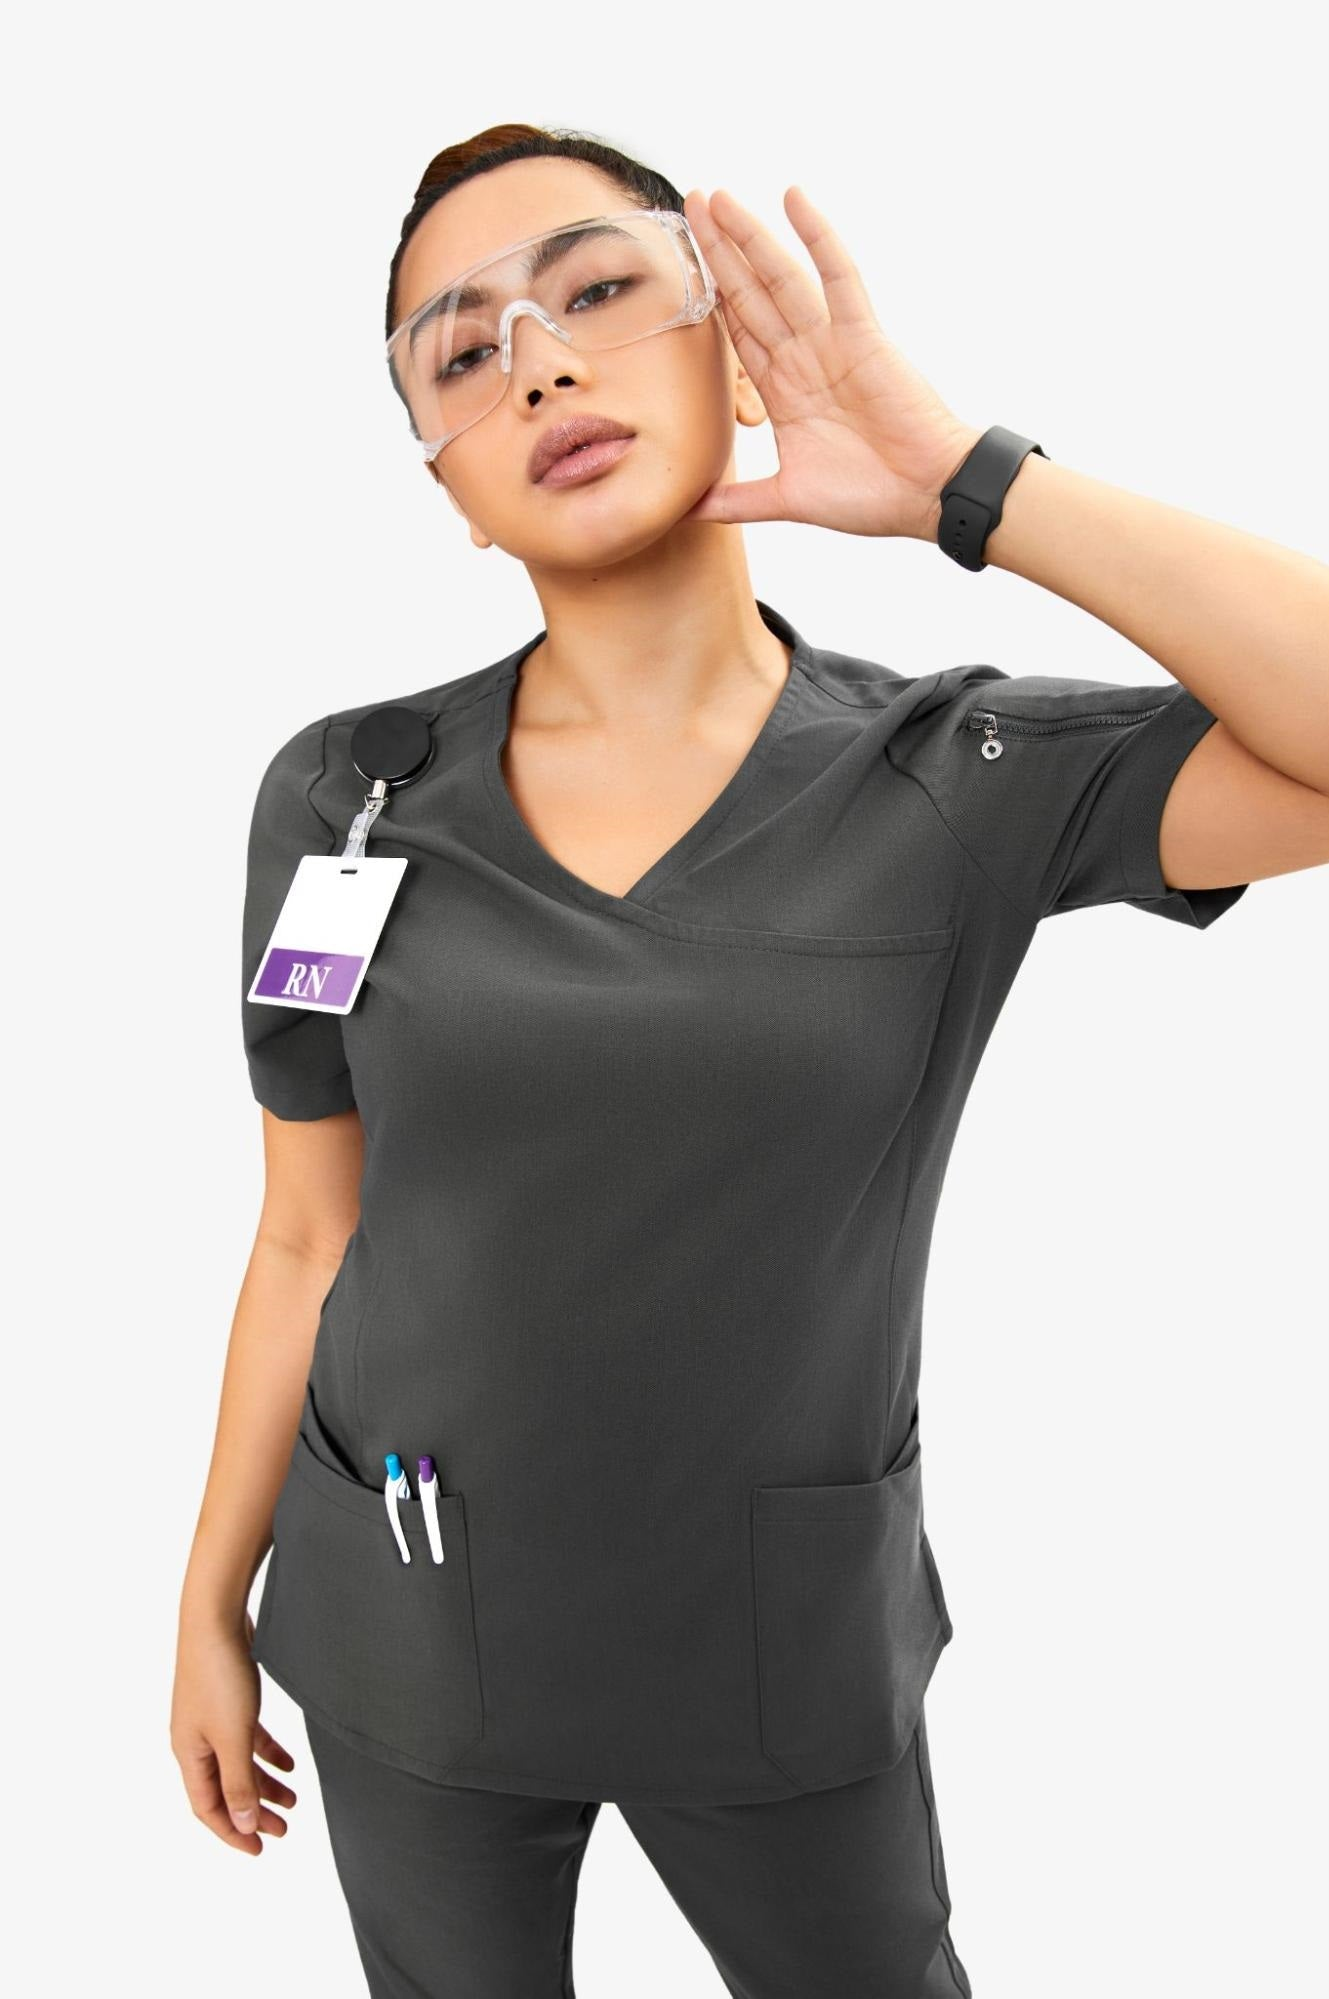 Pediatric Scrubs: How to Find a Set You (and the Kids) Love